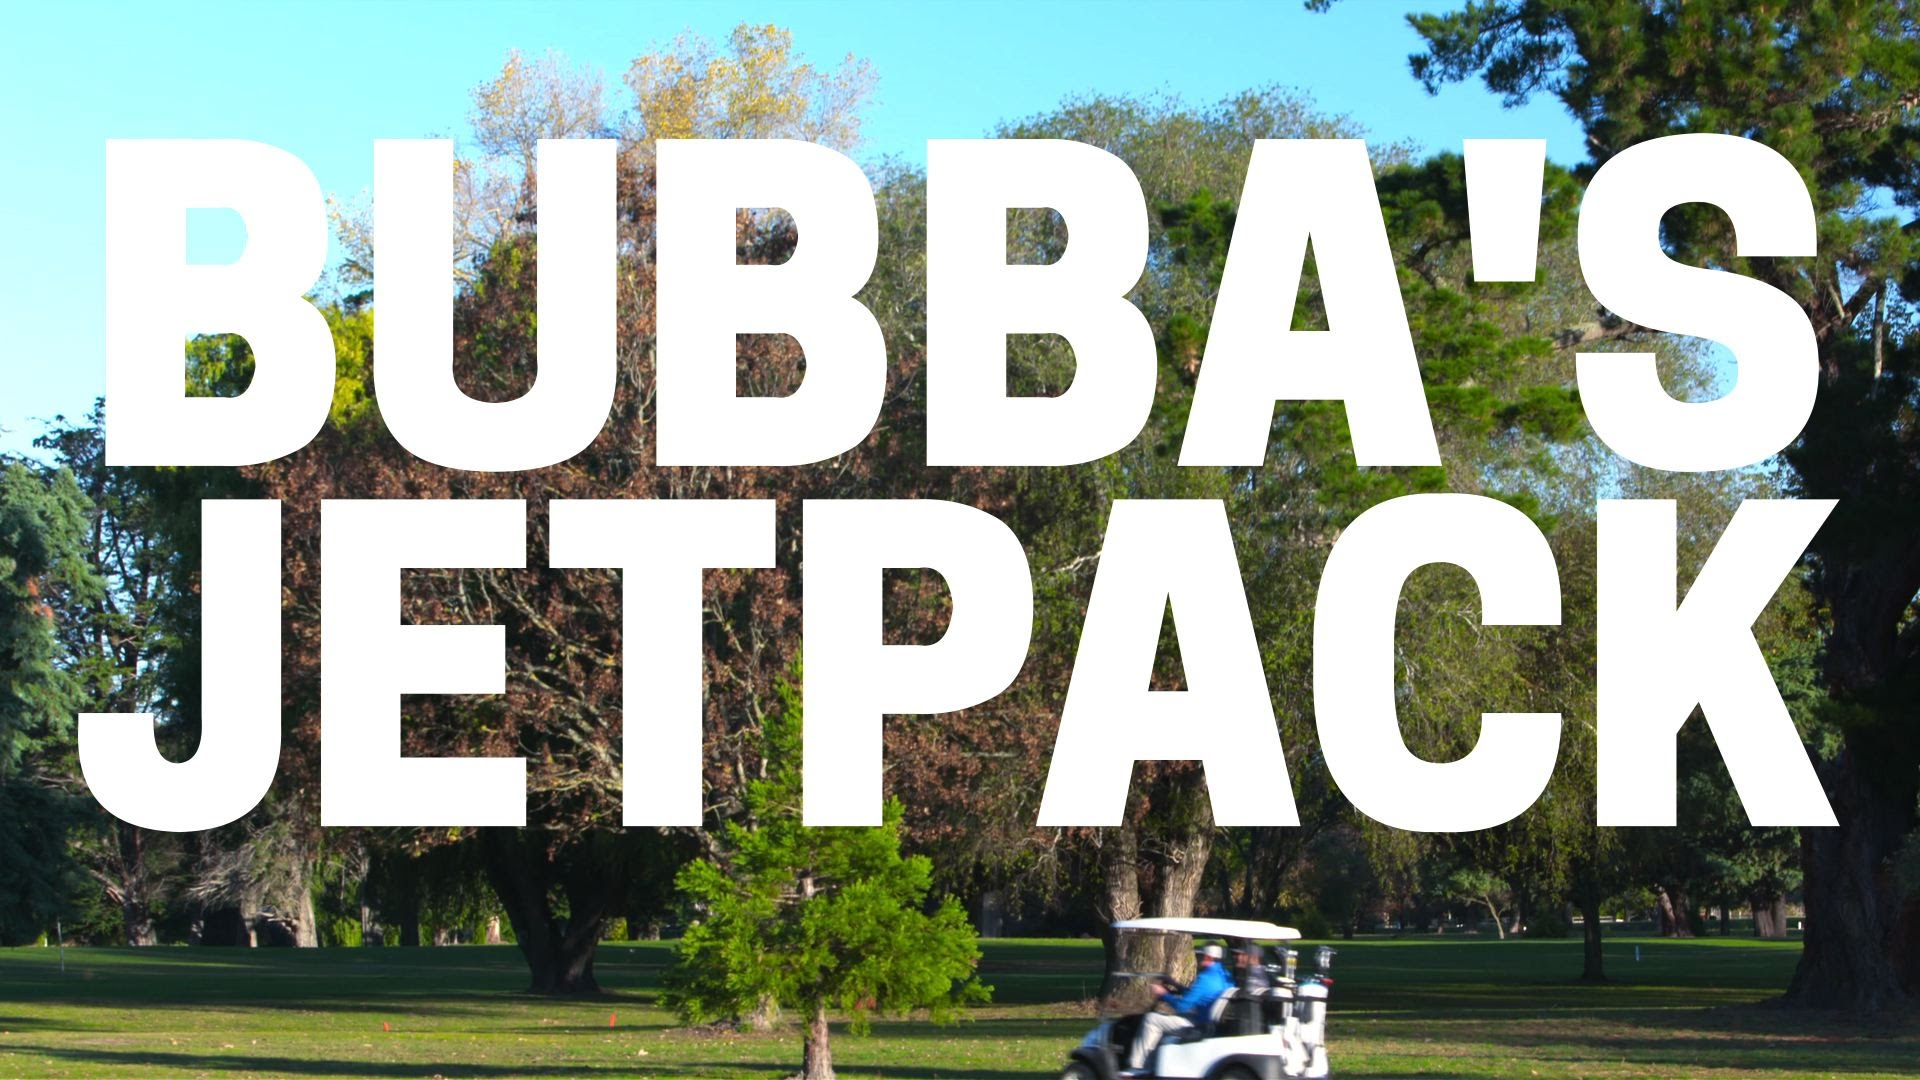 44ee94fe819 Bubba Watson s Jetpack  The future form of transportation in golf ...